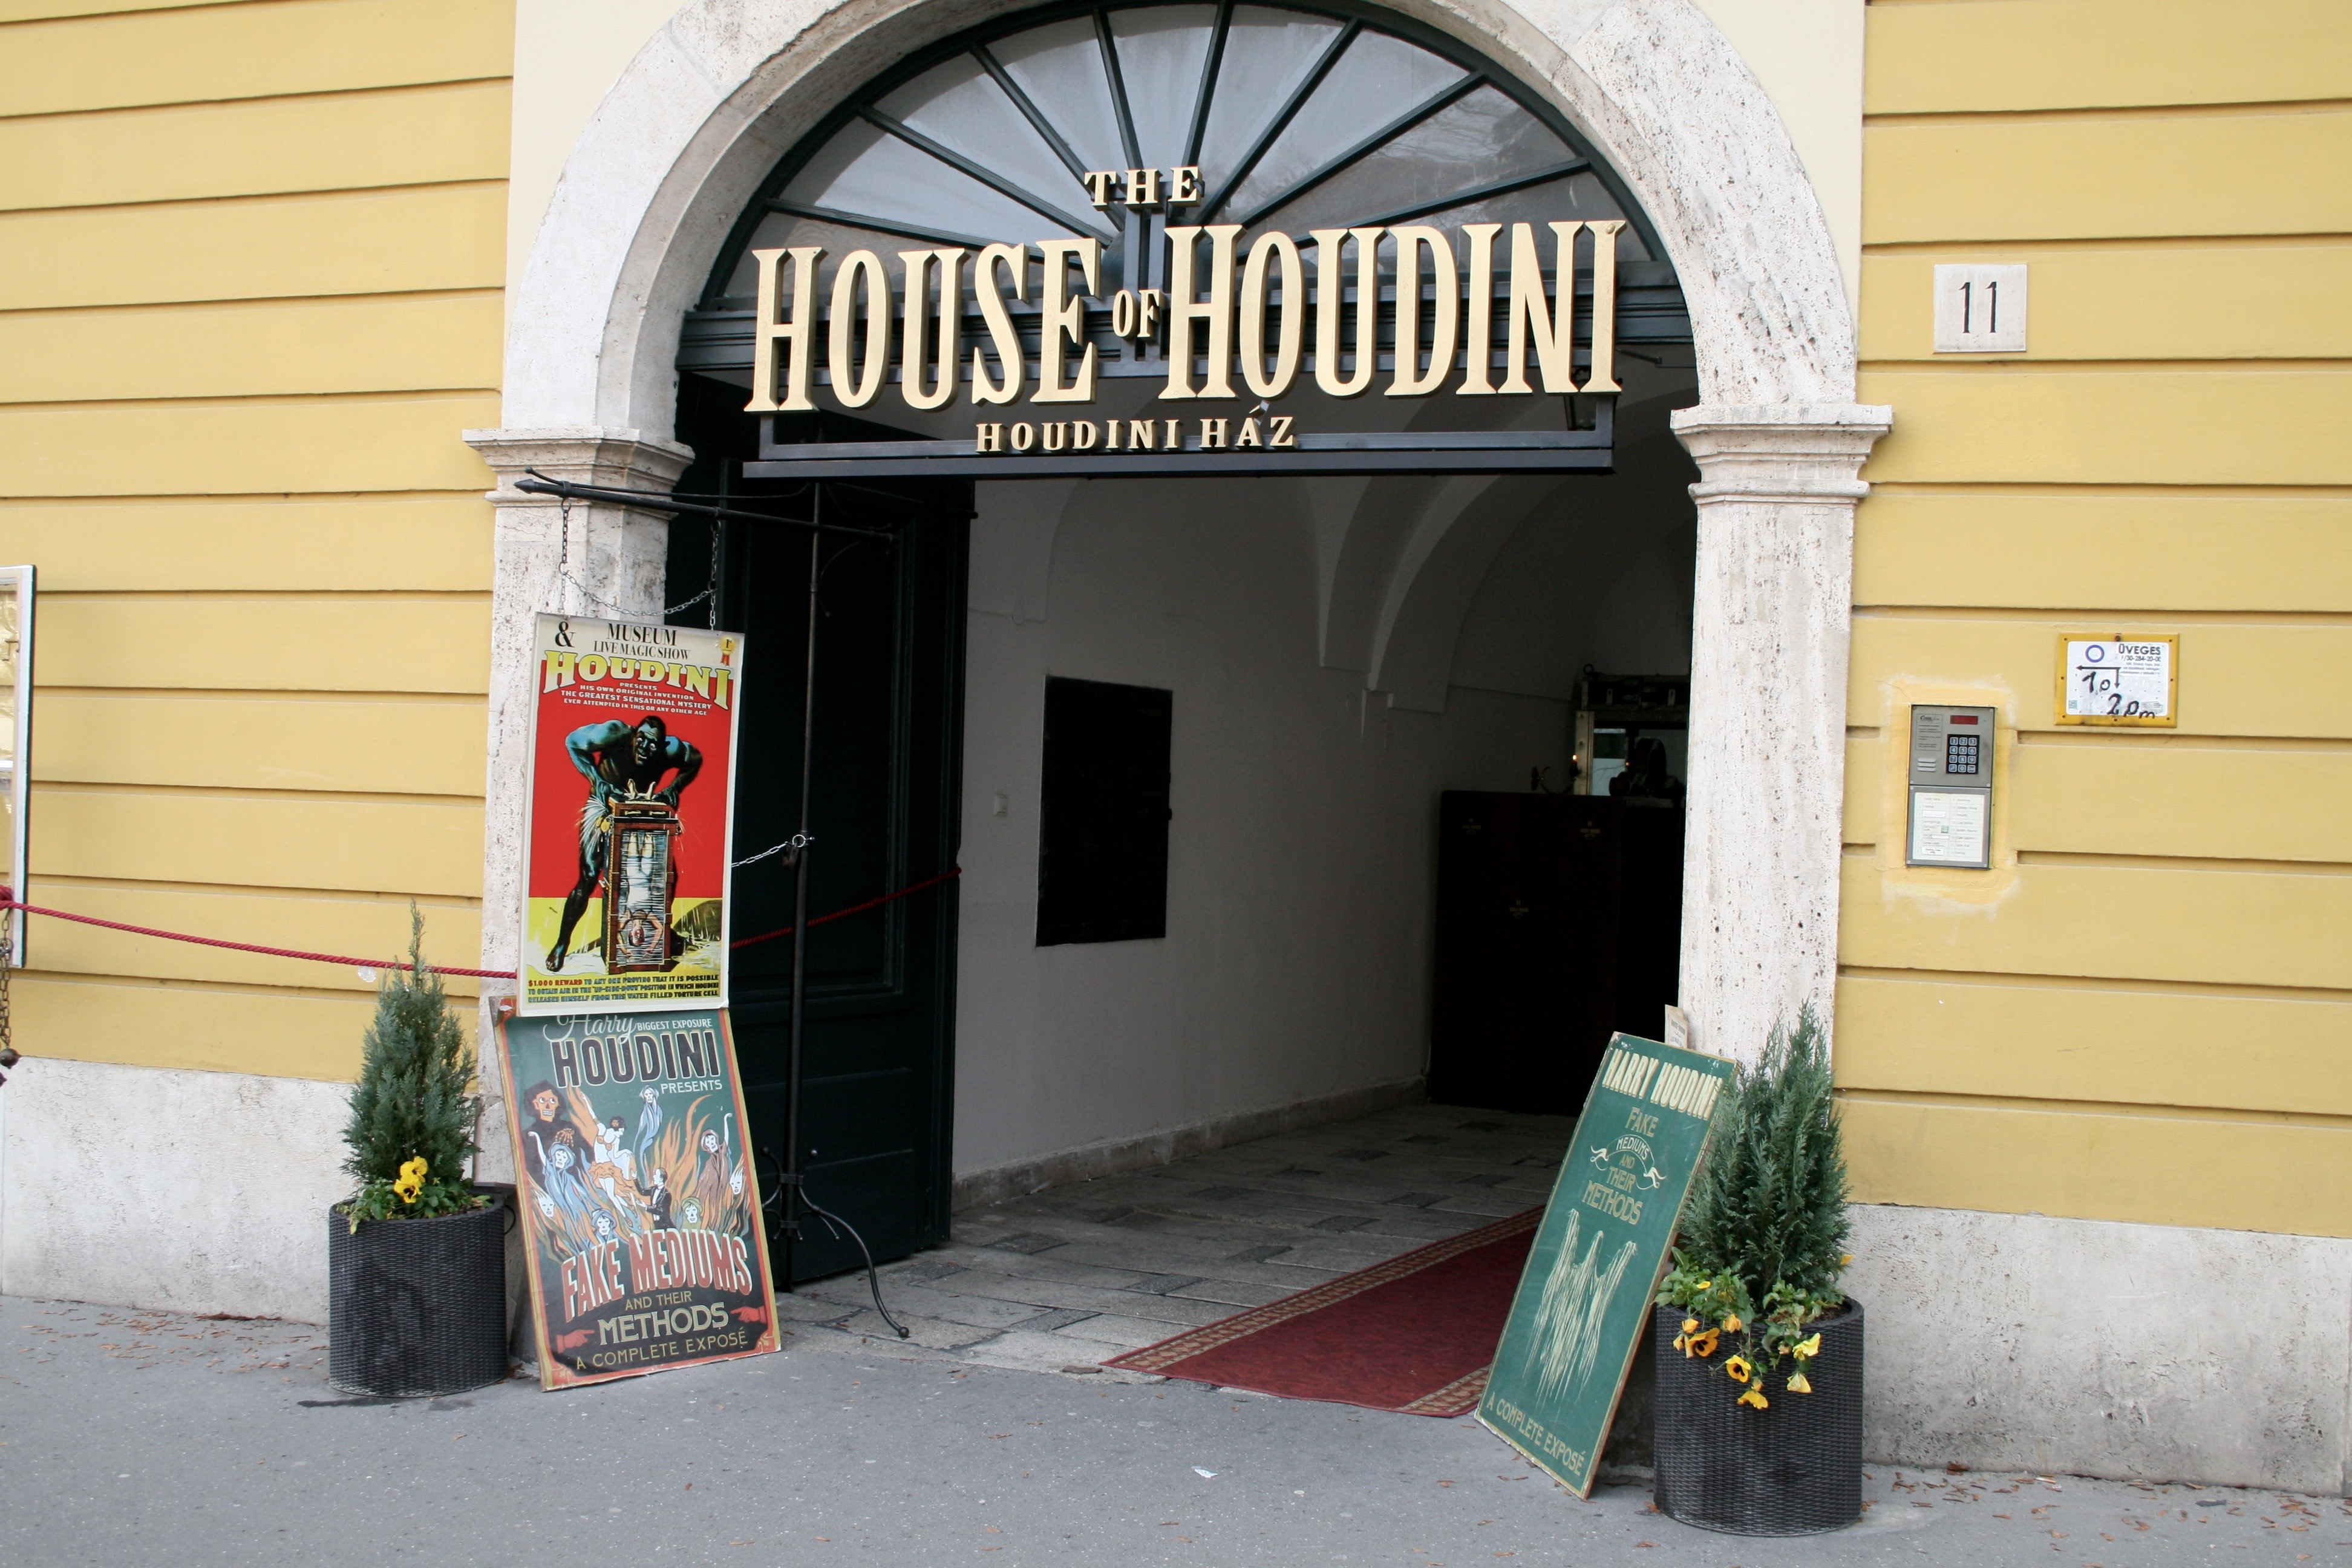 House of Houdini | Budapest, Hungary Attractions - Lonely Planet